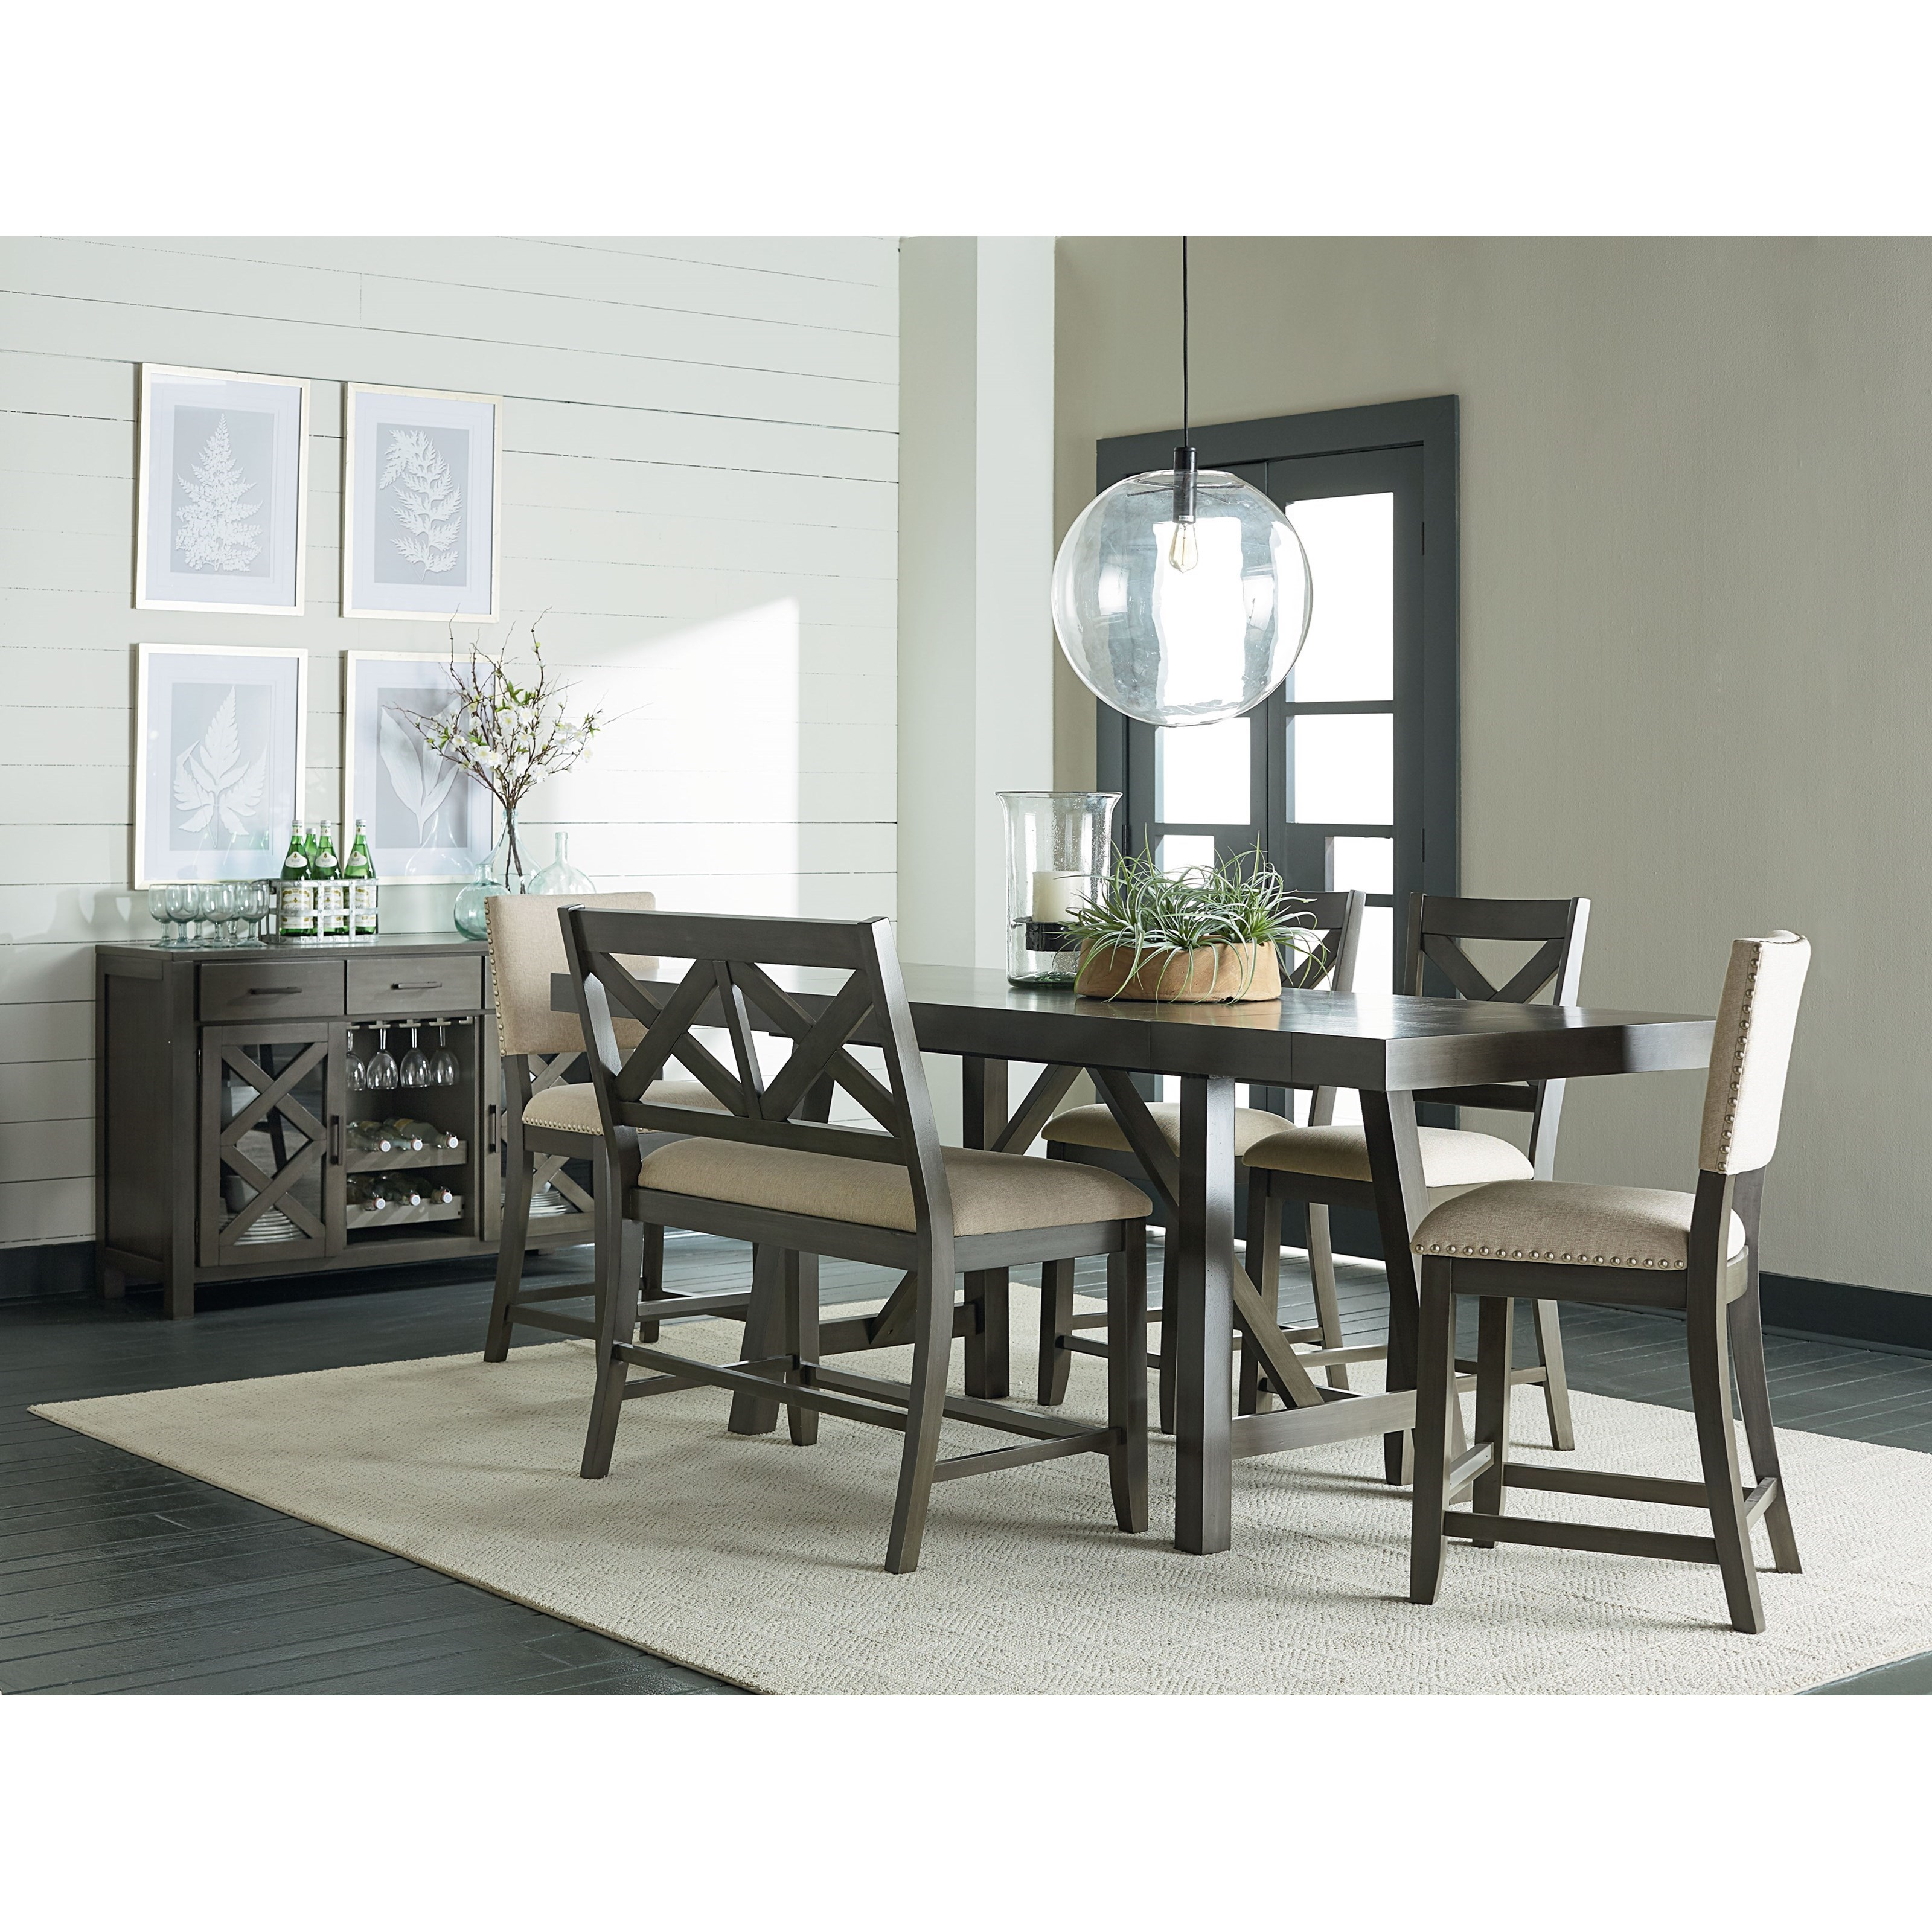 Standard Furniture Cosmo Adjustable Height Round Wood Top: 6 Piece, Counter Height Trestle Table Dining Set By